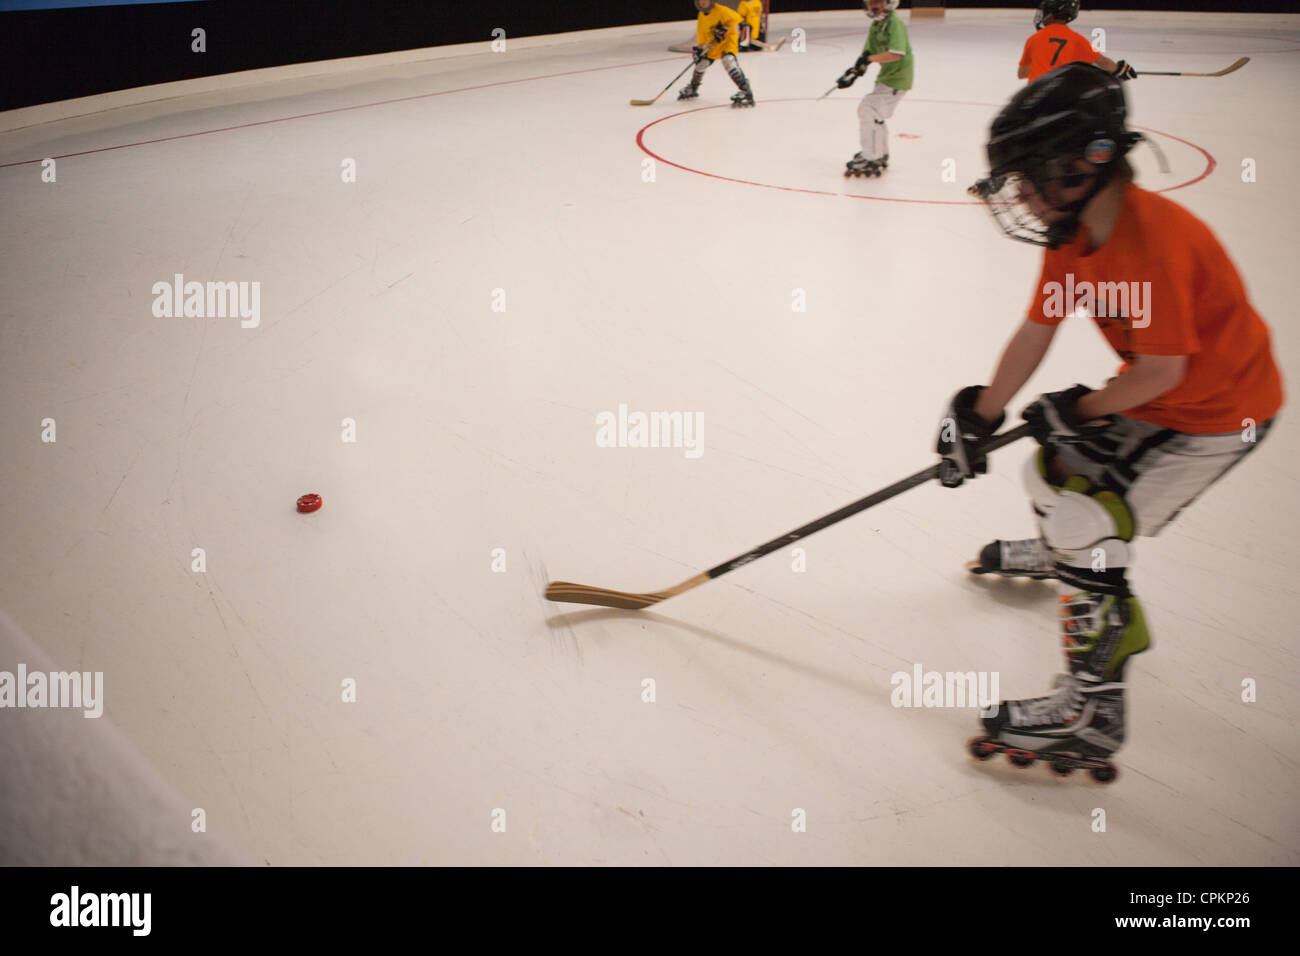 Hockey player skating in rink, youth hockey league, aiming for puck. - Stock Image